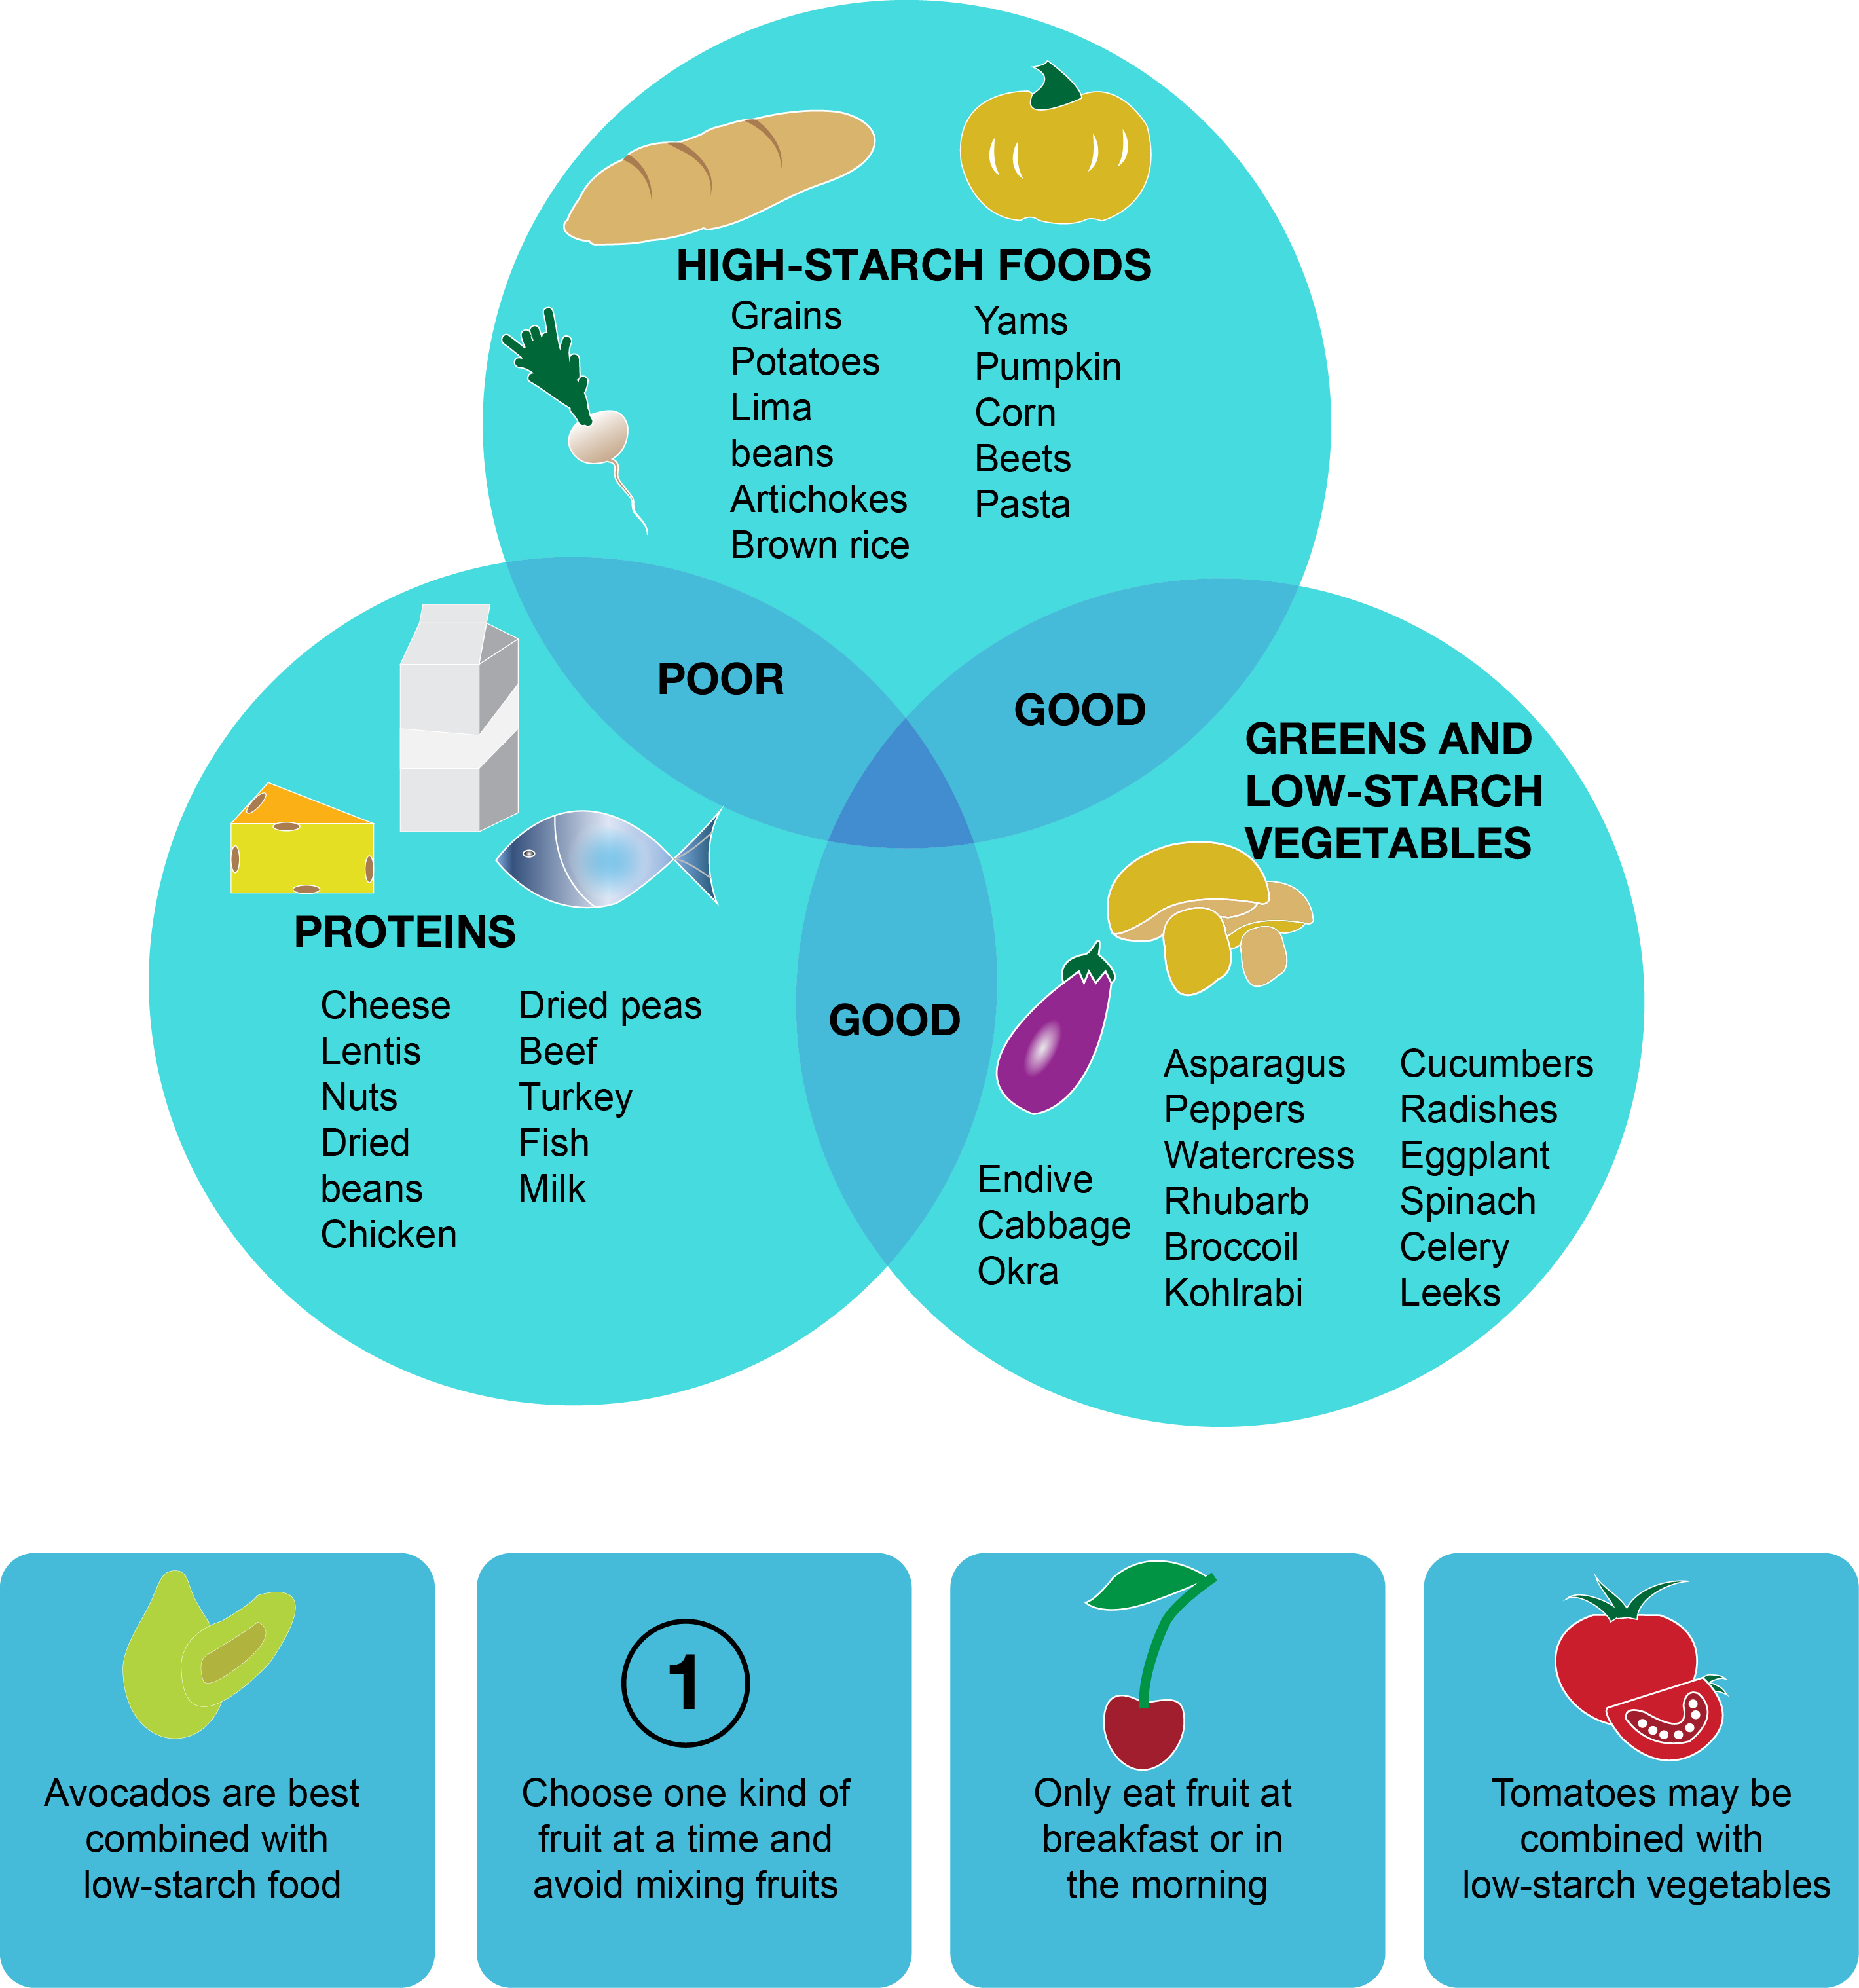 Food combining for IBS